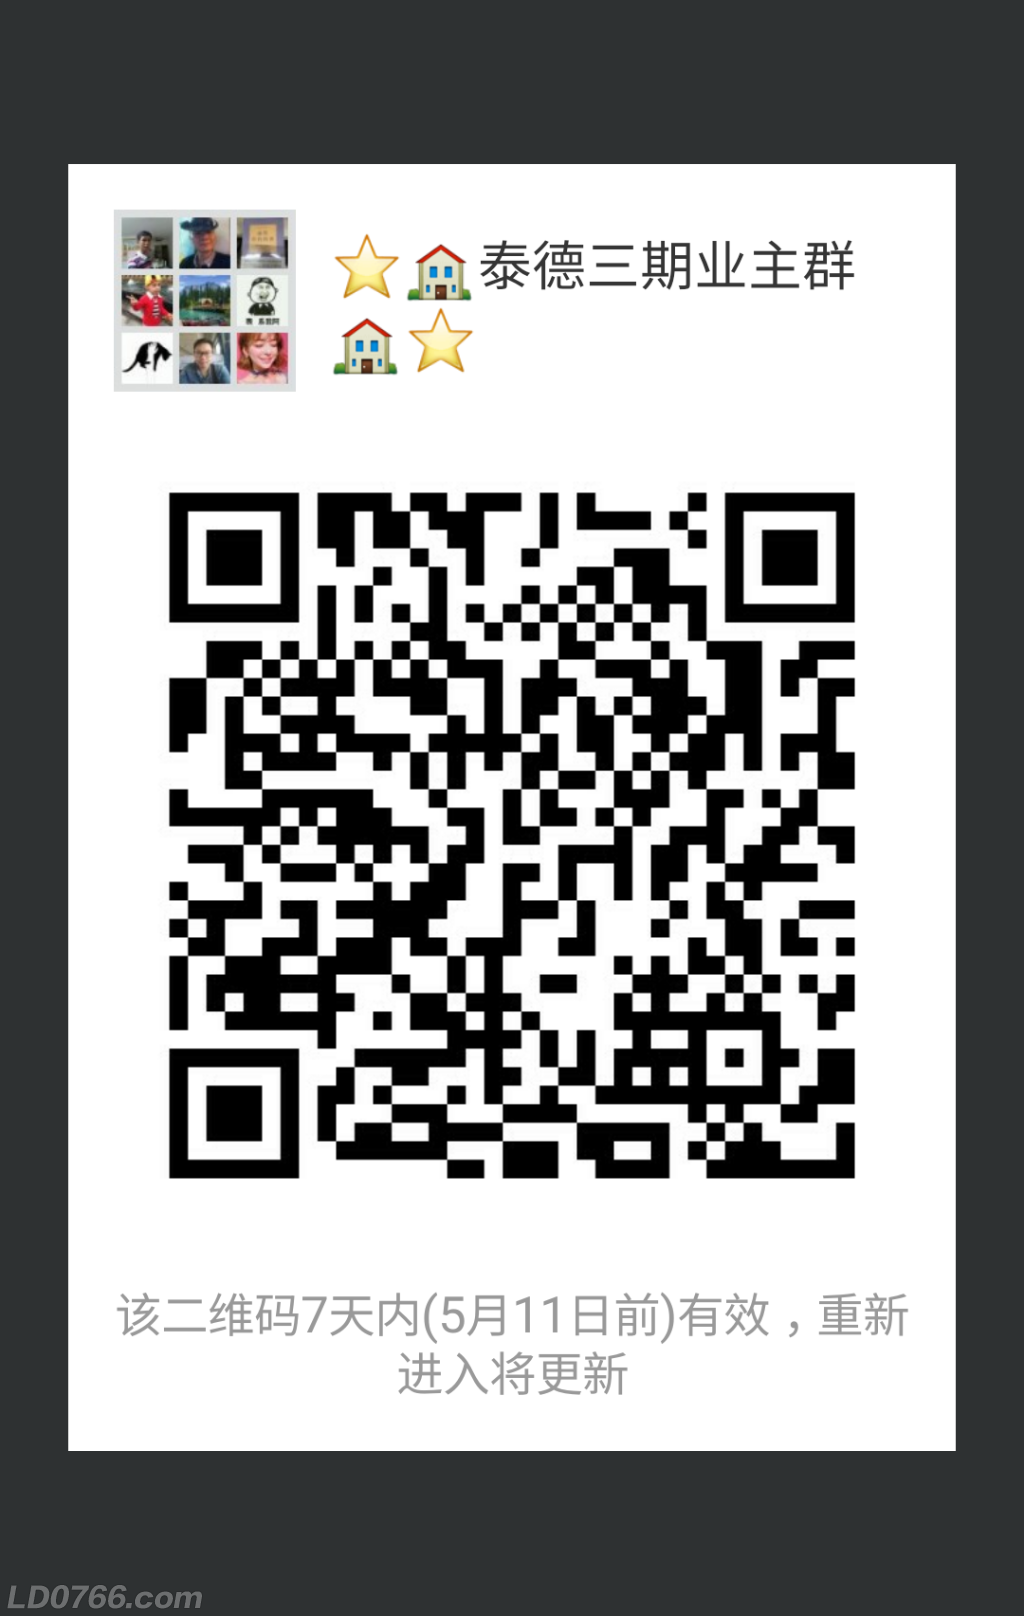 mmqrcode1525439316016.png